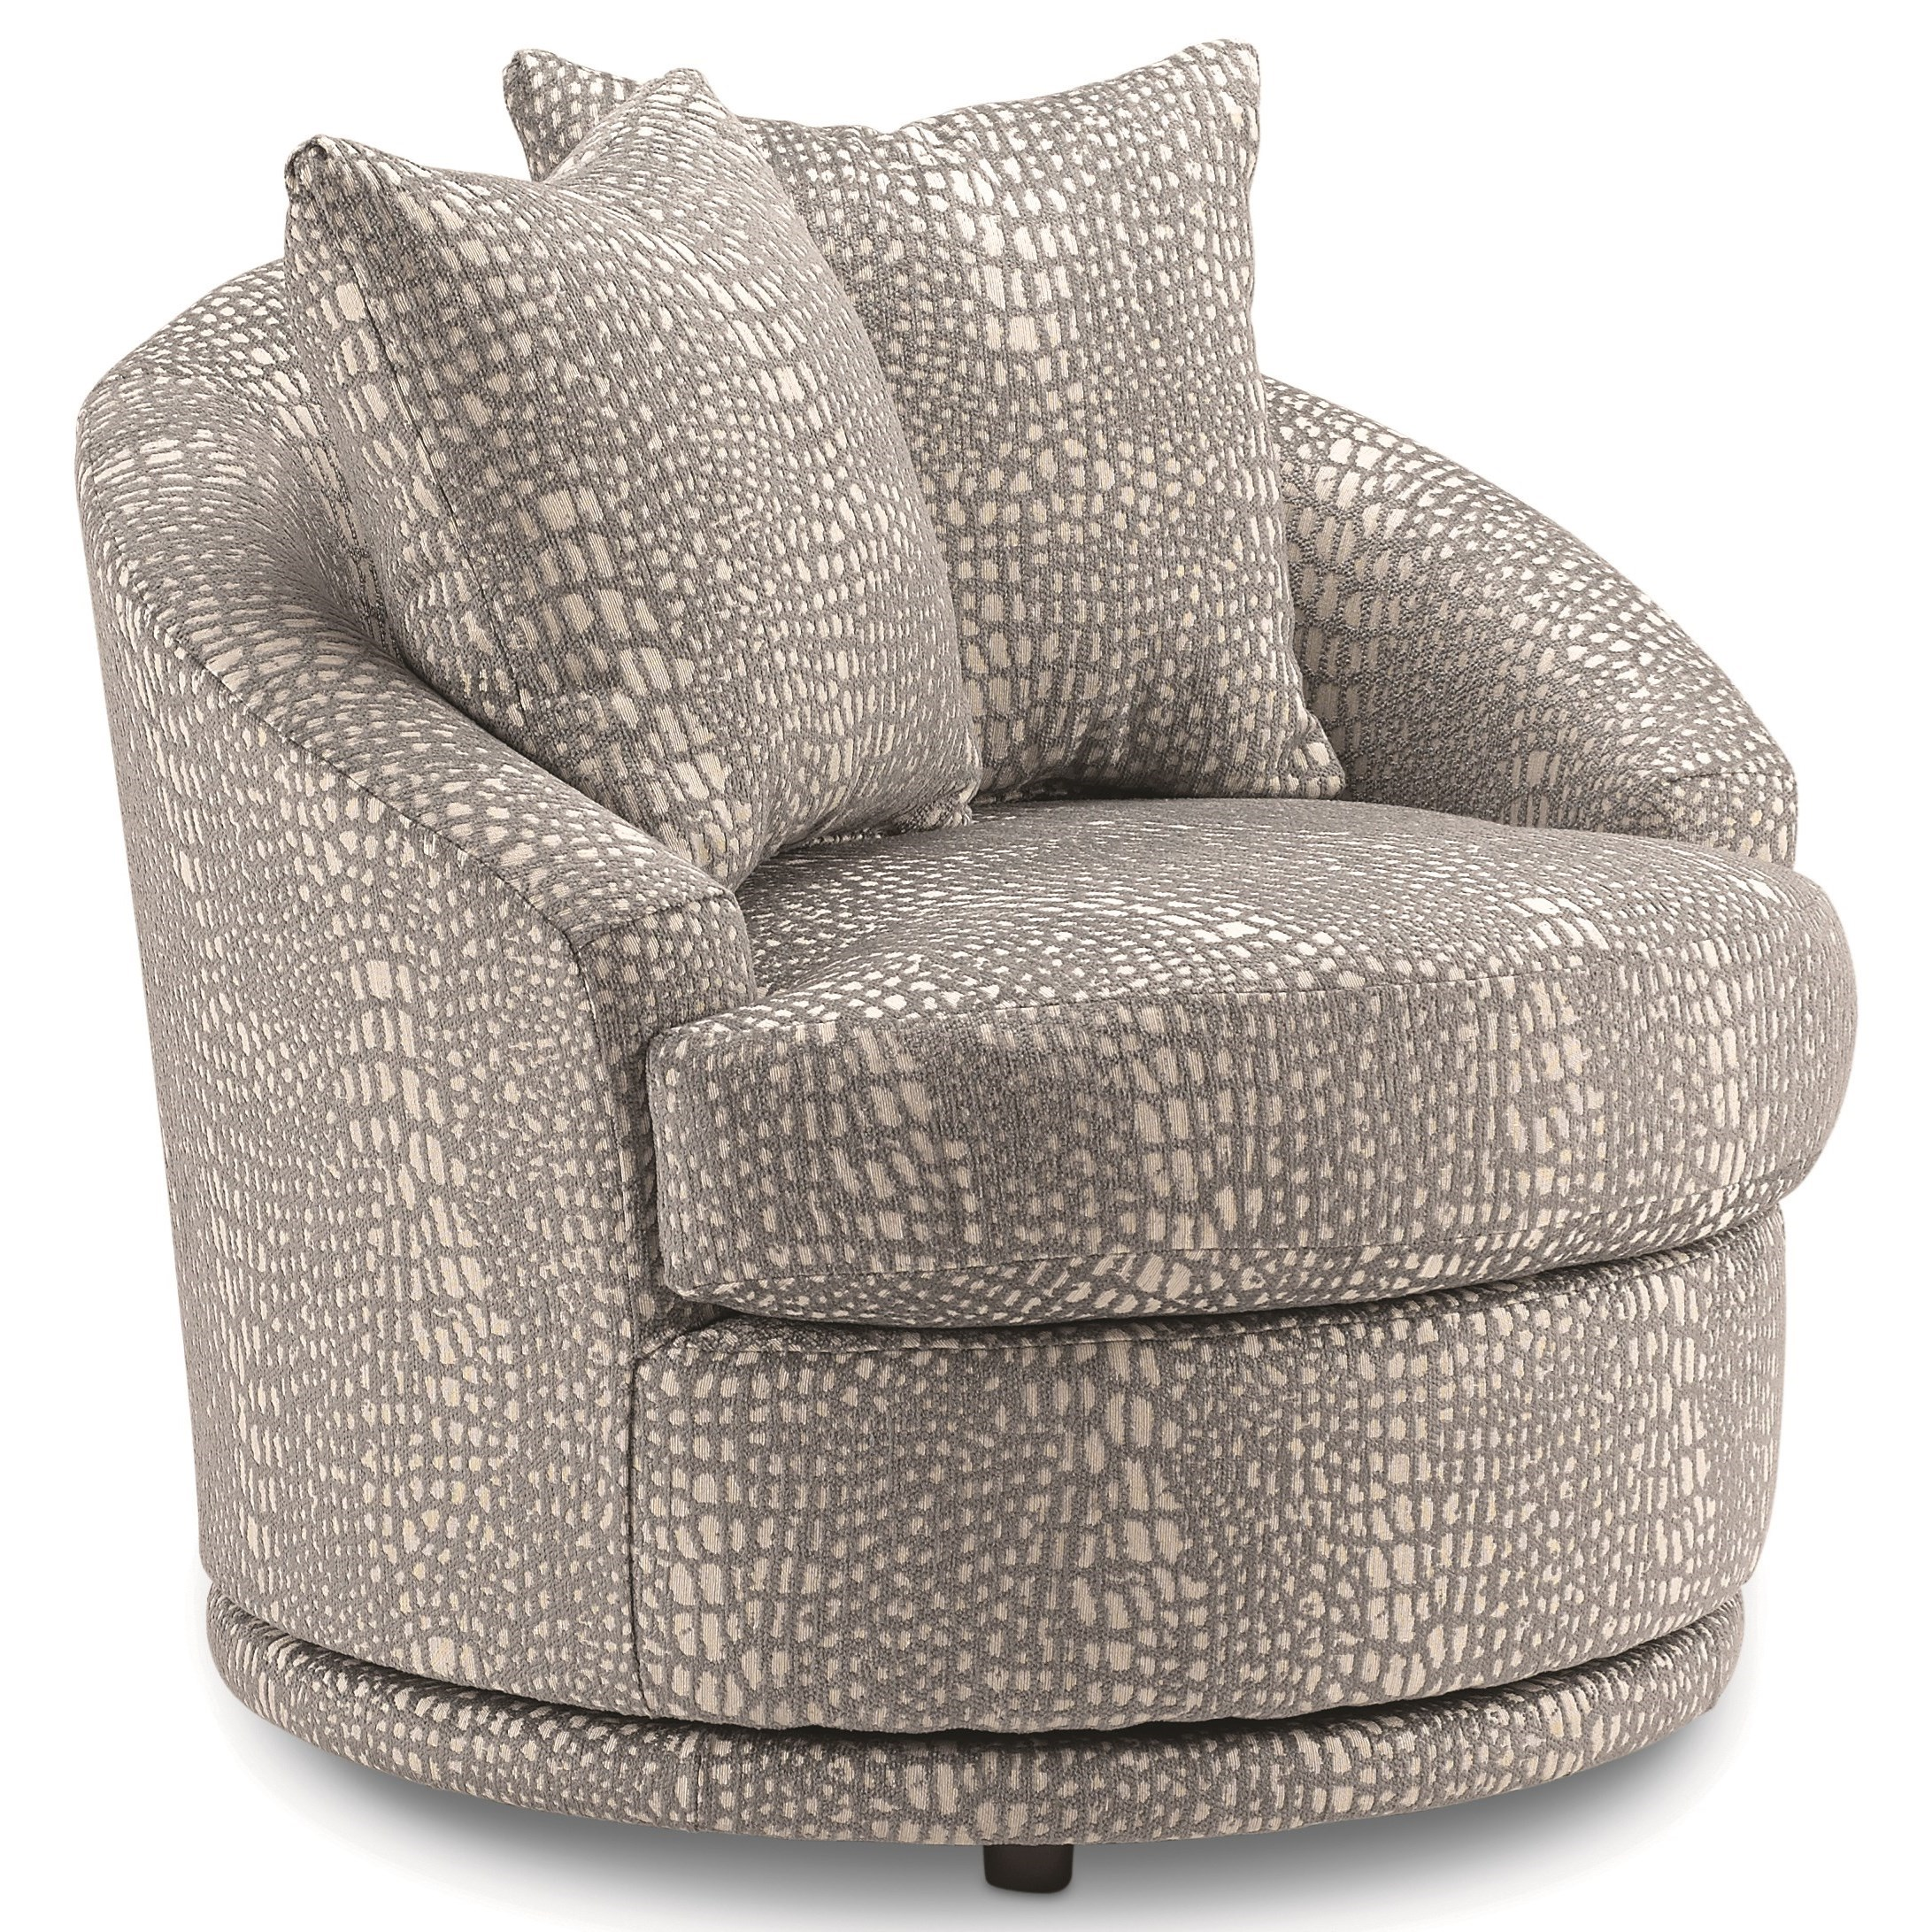 Alanna Swivel Barrel Chair by Bravo Furniture at Bennett's Furniture and Mattresses